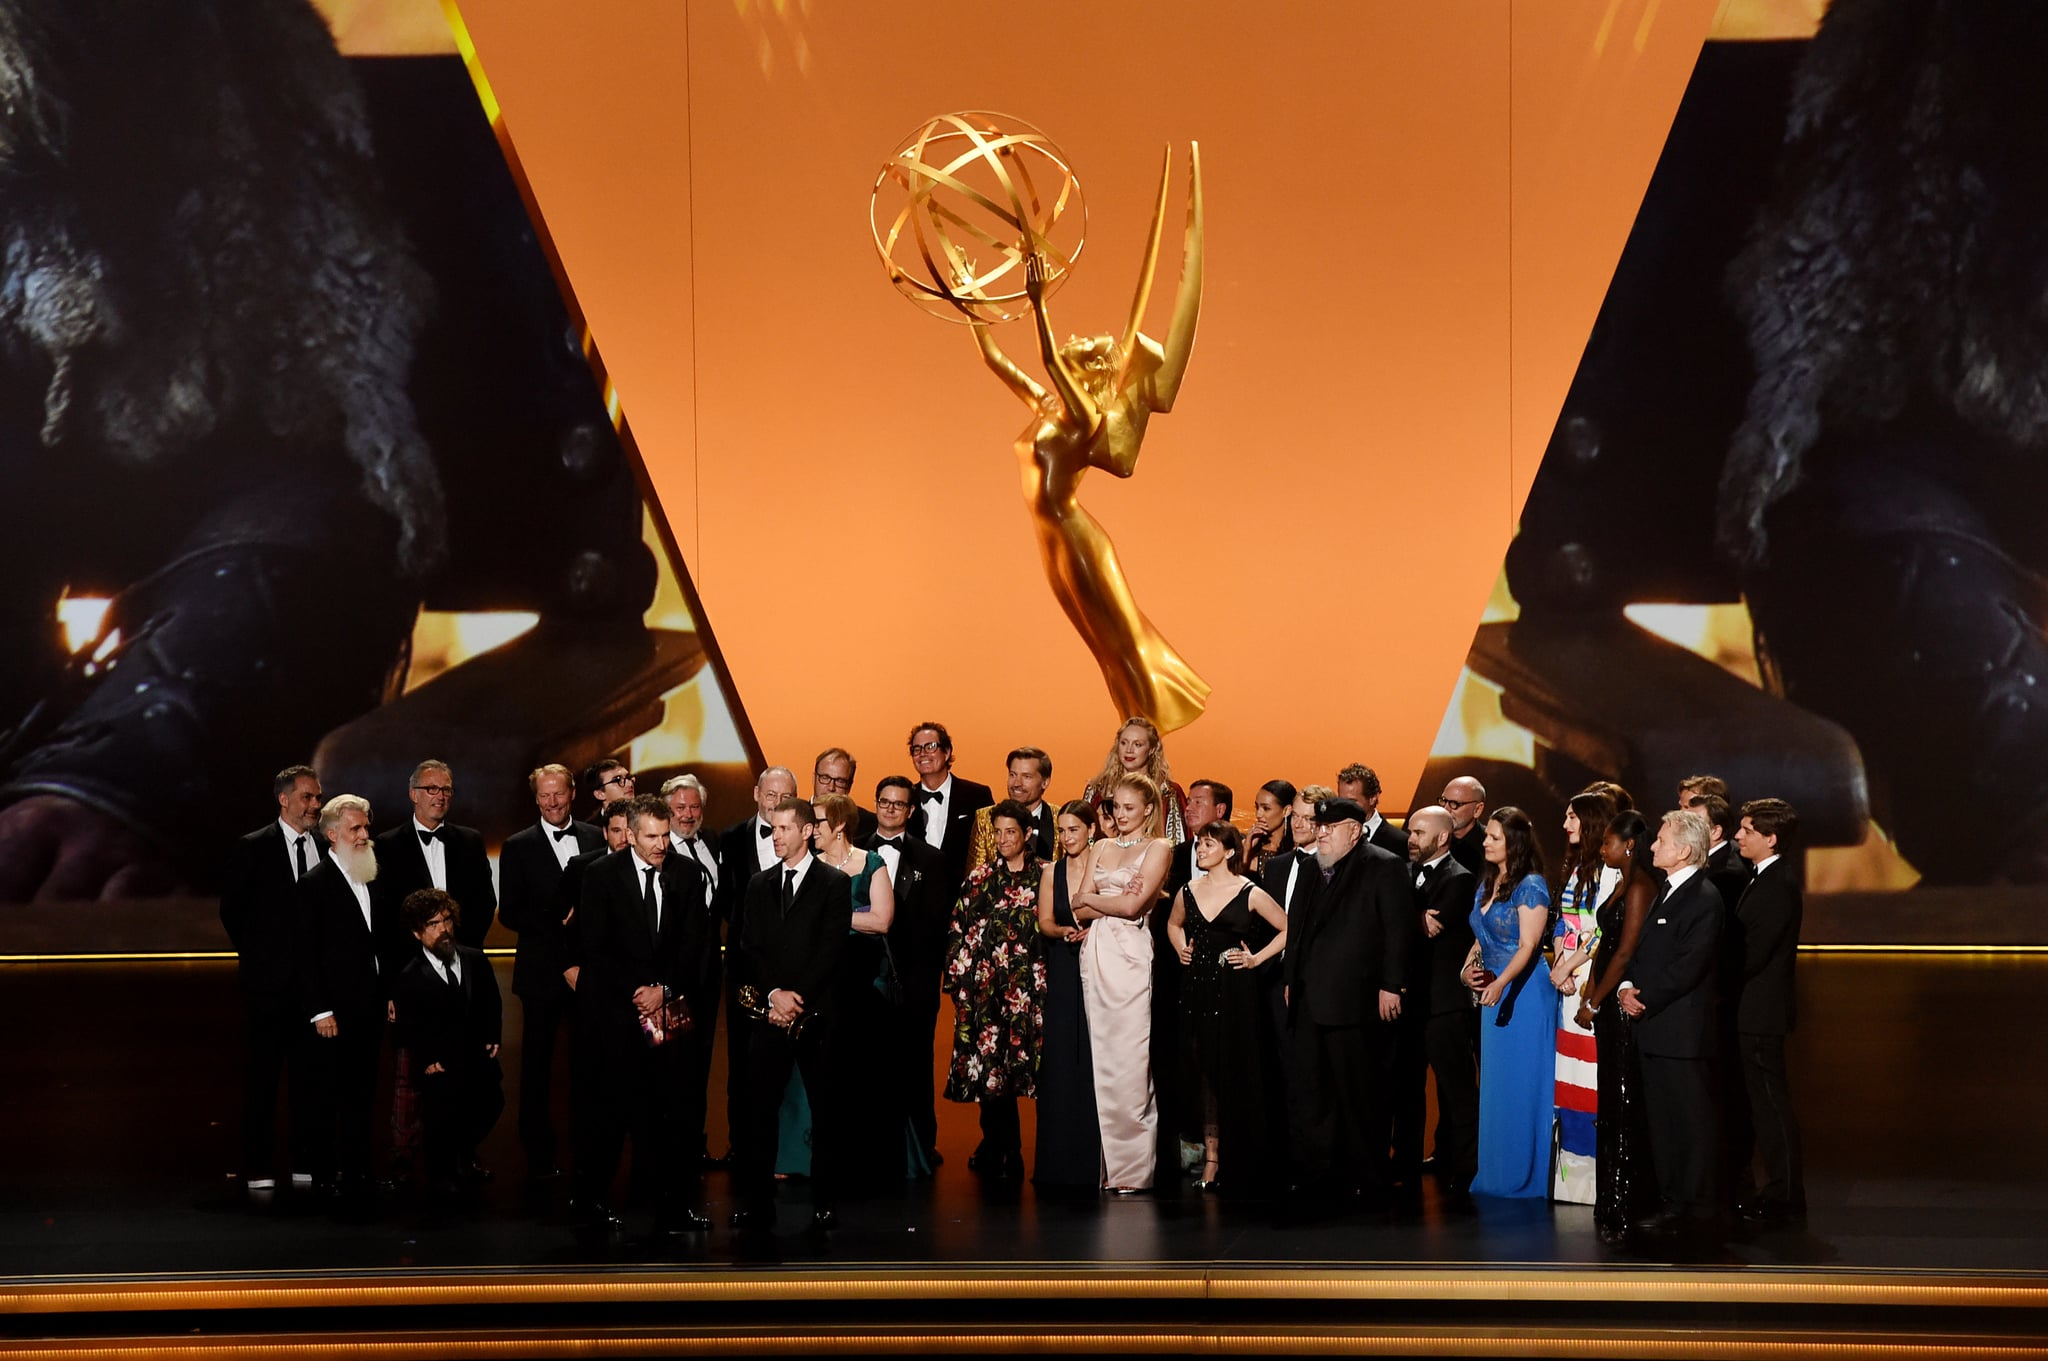 LOS ANGELES, CALIFORNIA - SEPTEMBER 22: Cast and crew of 'Game of Thrones' accept the Outstanding Drama Series award onstage during the 71st Emmy Awards at Microsoft Theatre on September 22, 2019 in Los Angeles, California. (Photo by Kevin Winter/Getty Images)